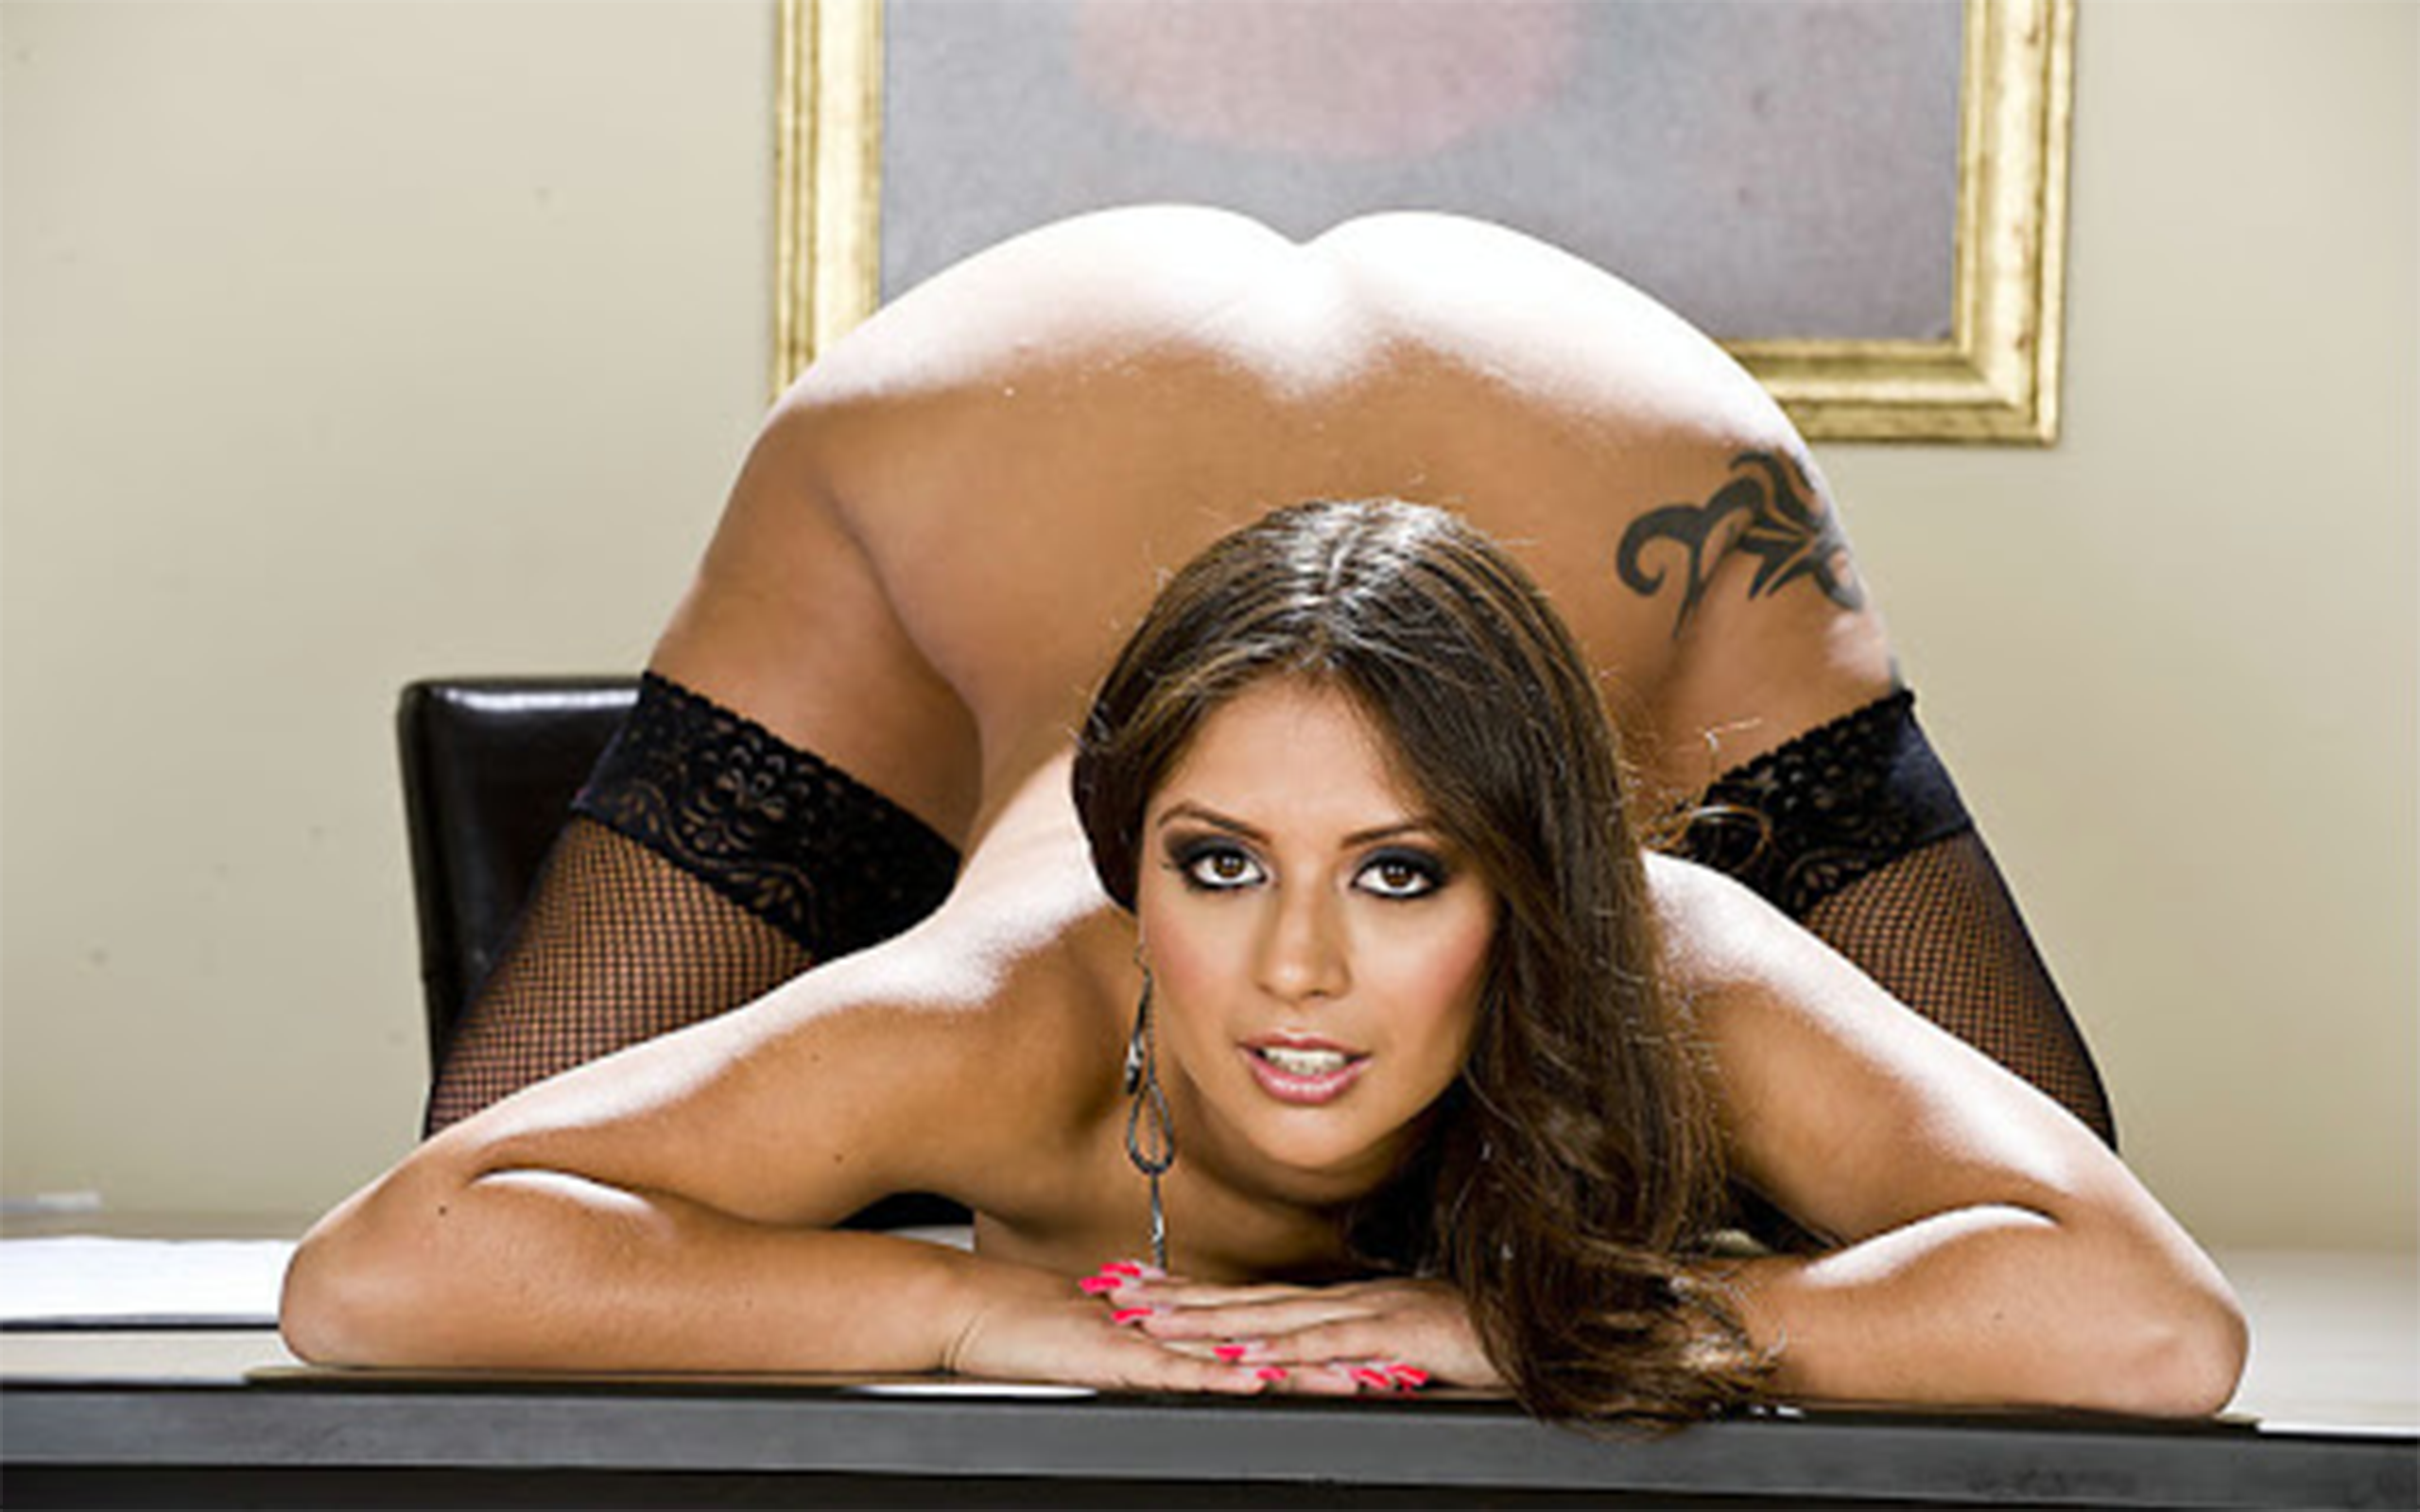 Wallpaper jynx maze, stockings, ass, brunette, bad quality ...